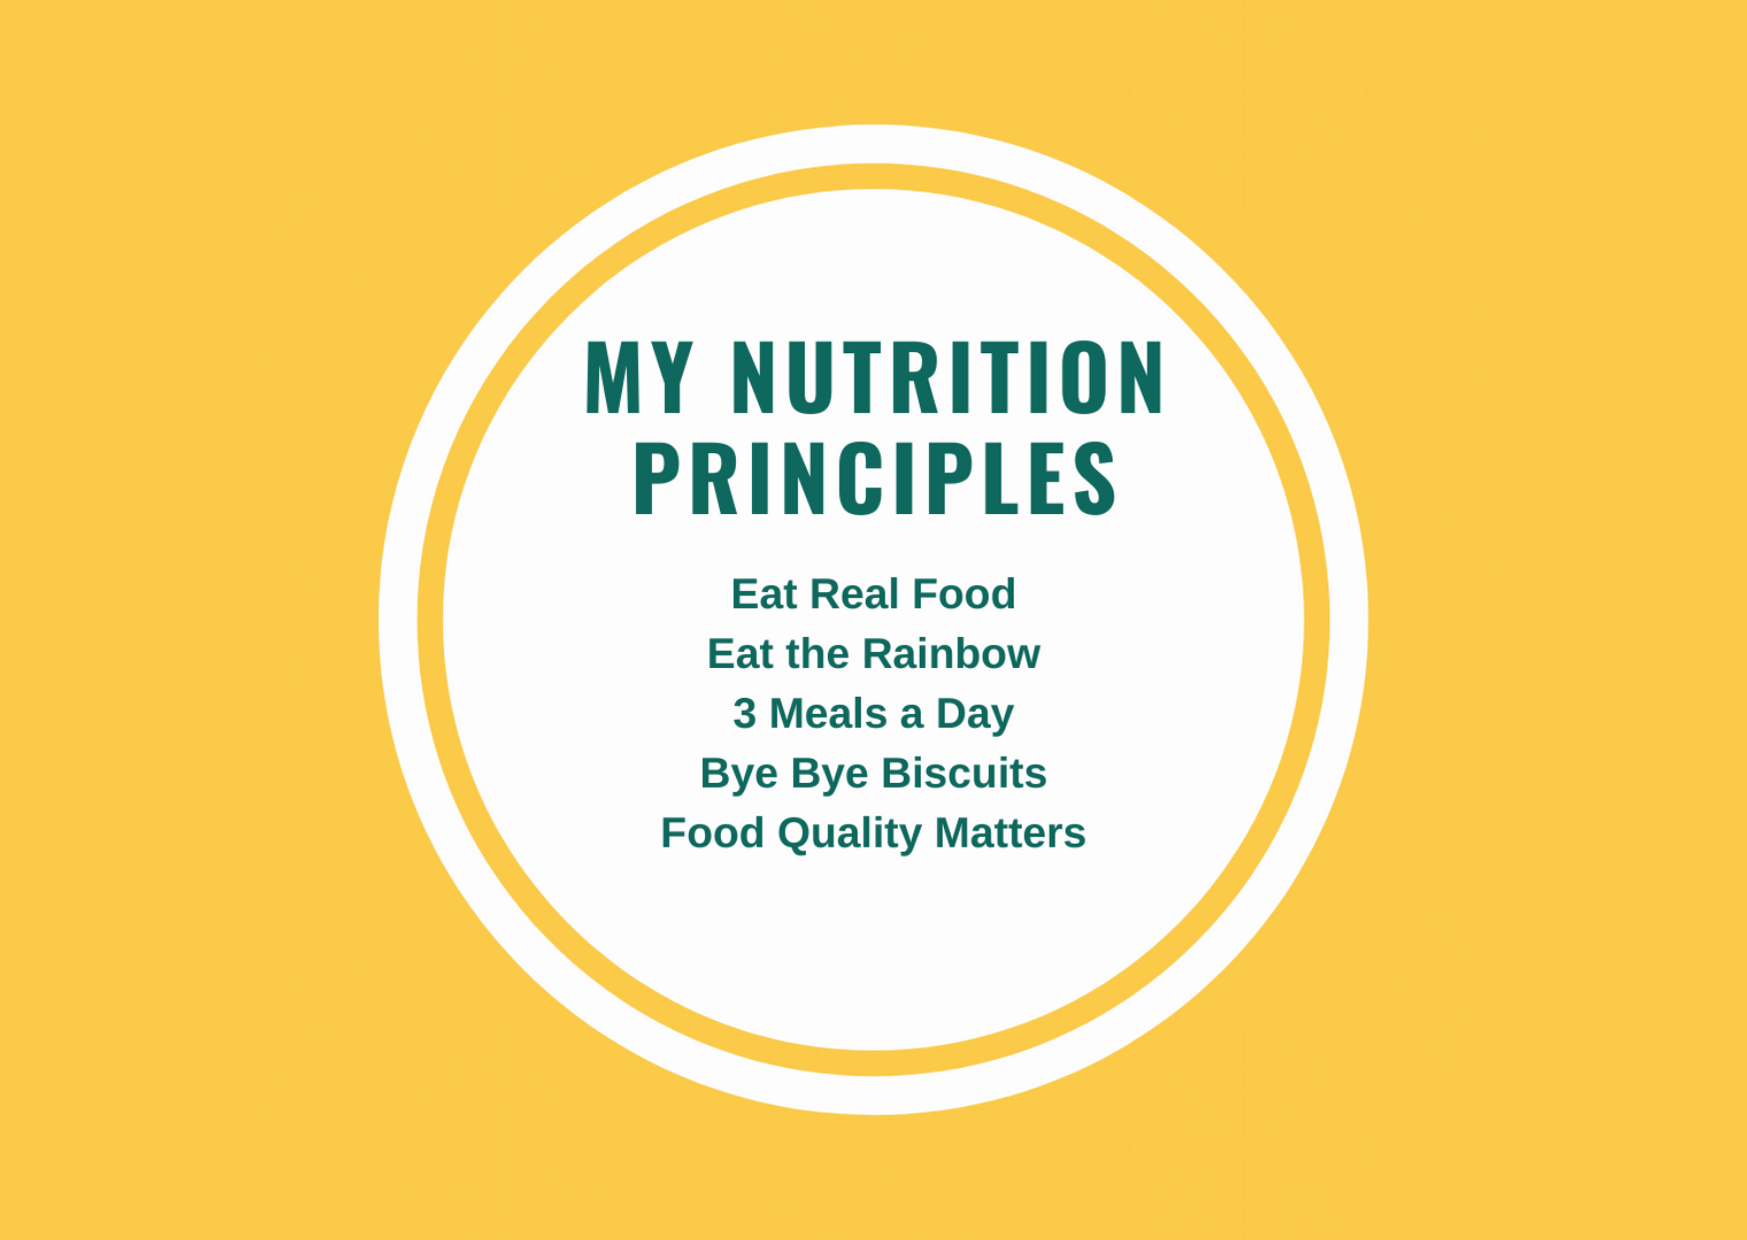 My Nutrition Principles – The Year of Health Day 8 – June 2021